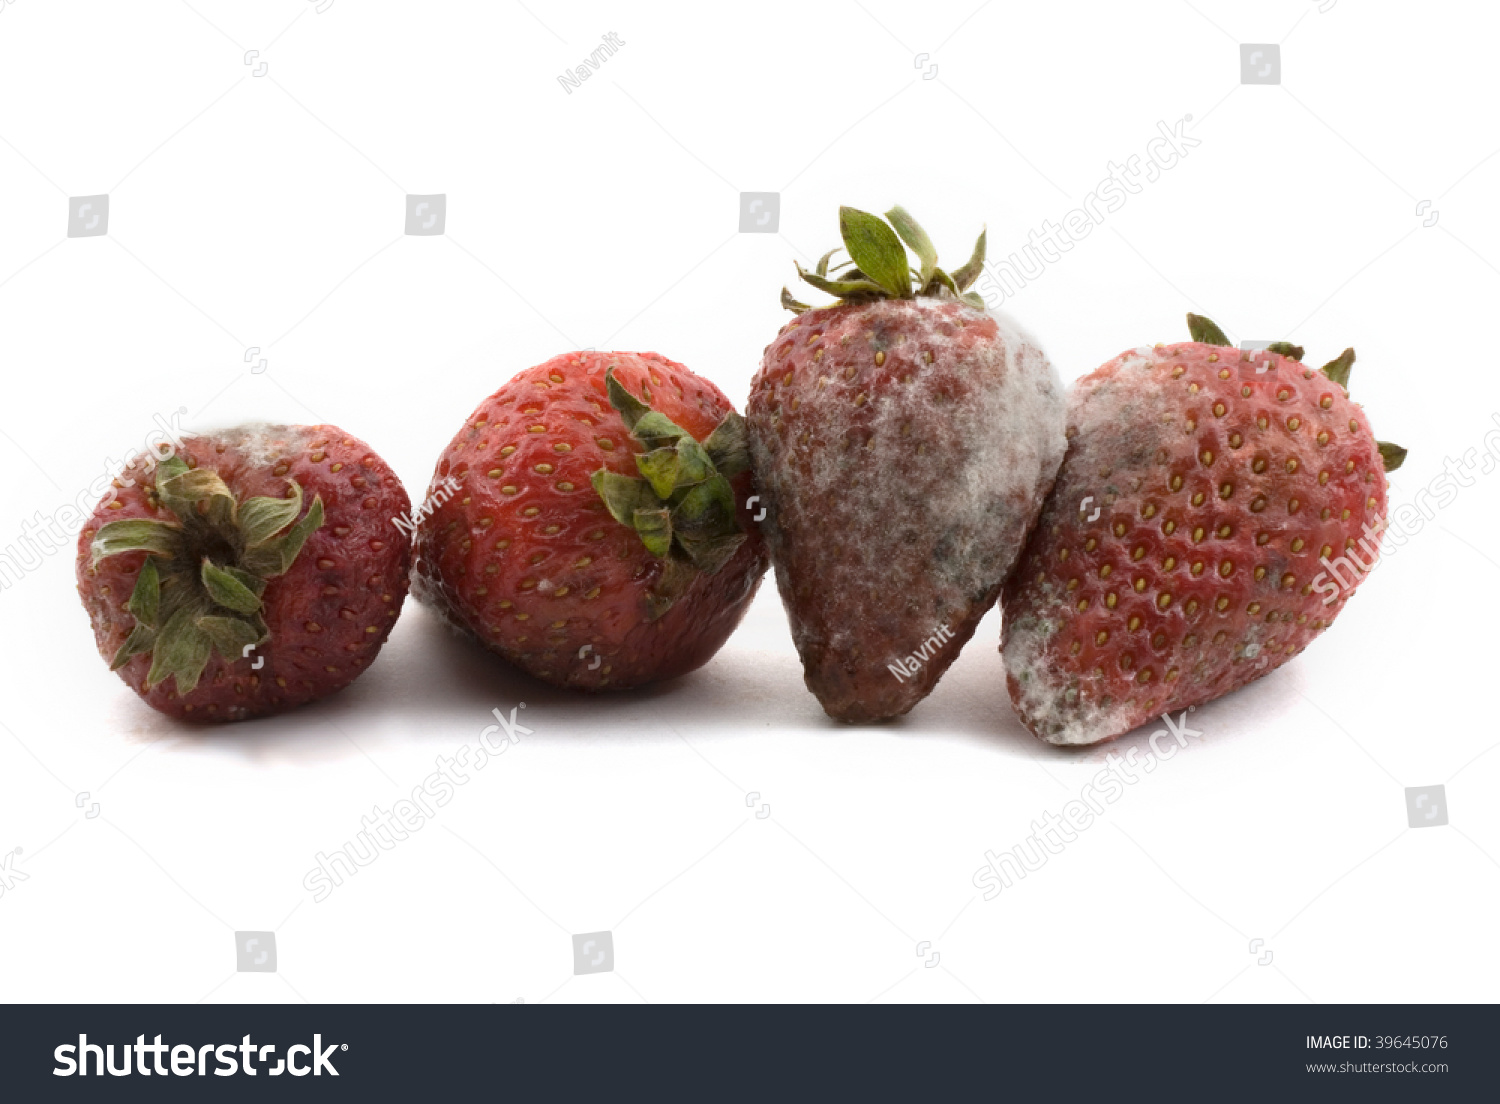 Rotten Strawberries High Resolution Image ...